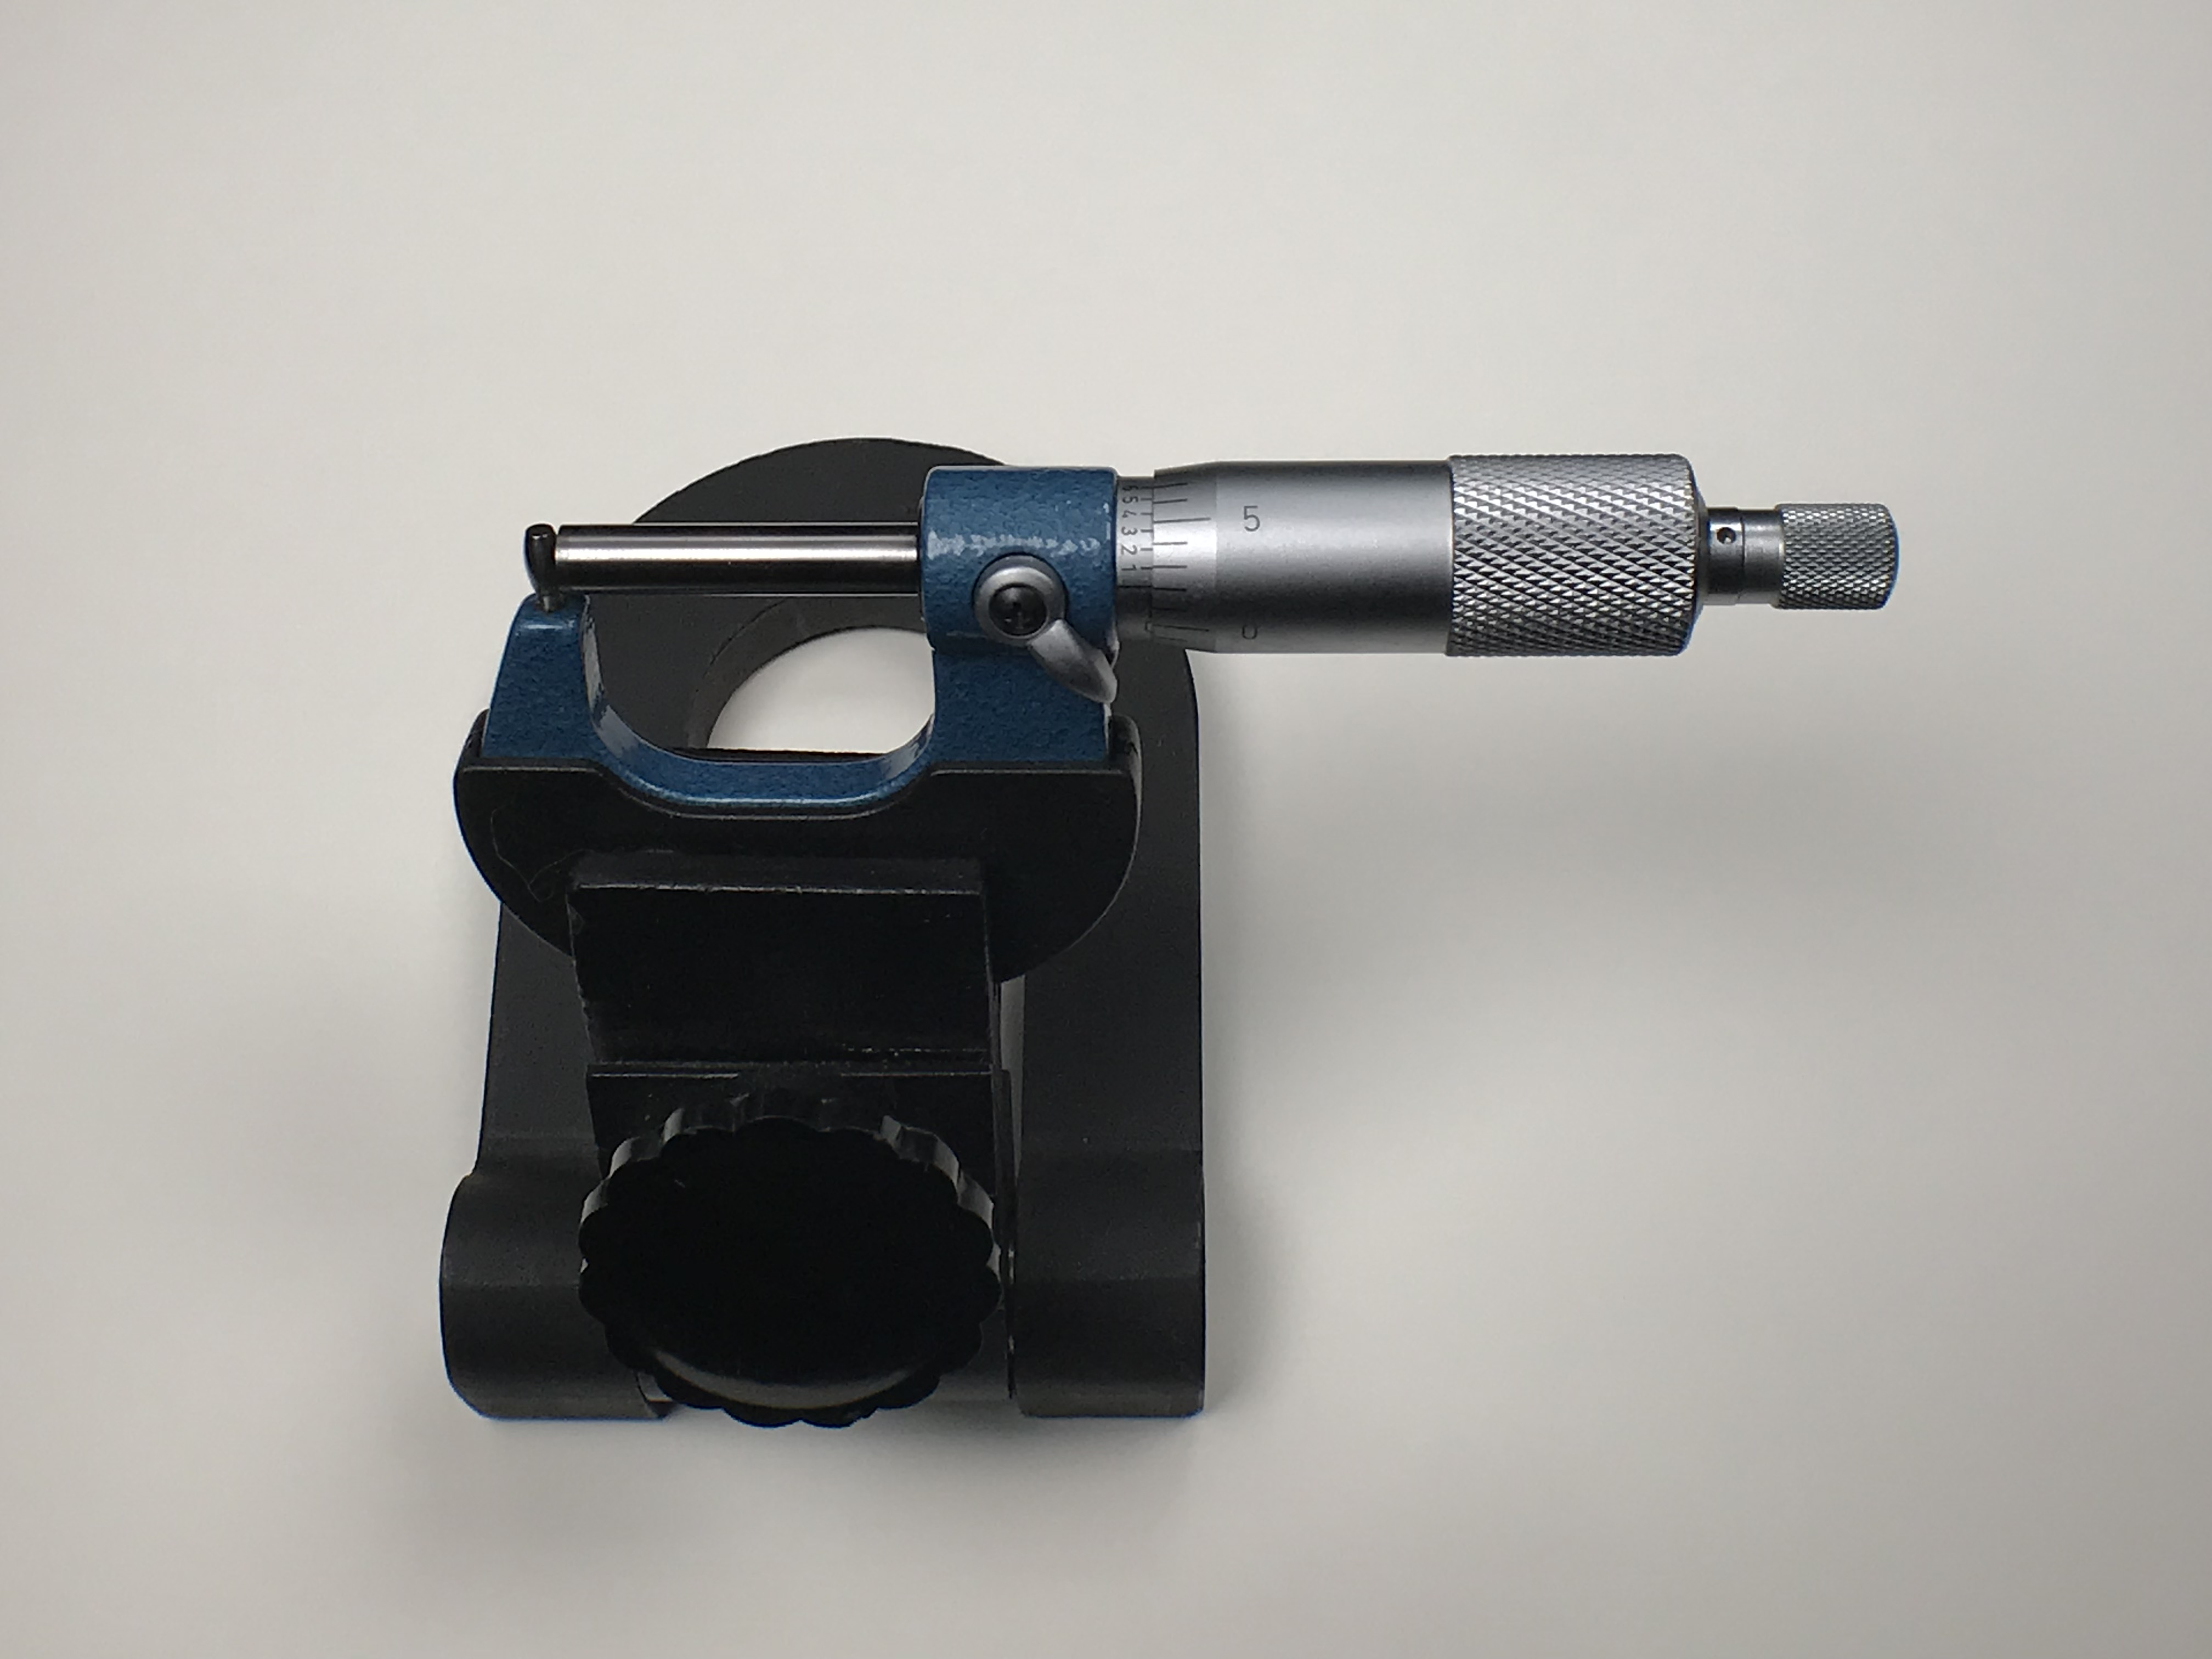 Mic S 3hr Micrometer Stand 3rd Hand Reloader